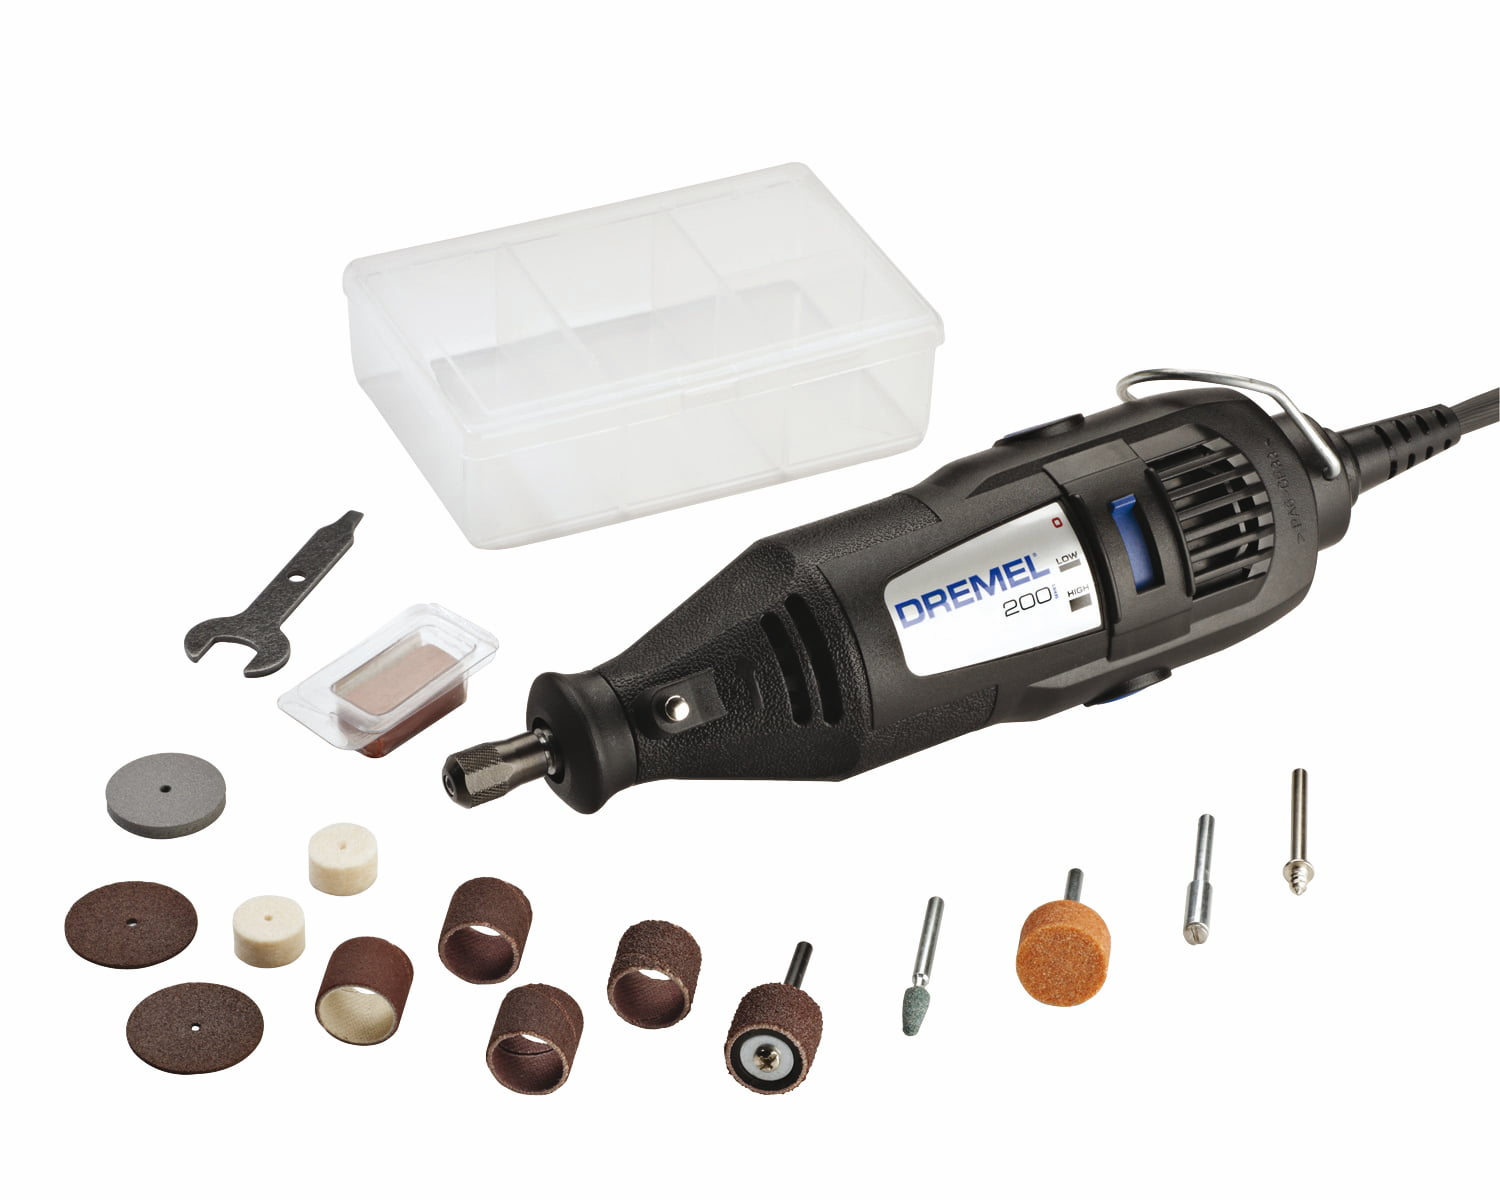 Dremel 200-N 15 0.9 Amp 2-Speed Corded Rotary Tool Kit with 15 Accessories by Dremel (DREMEL)